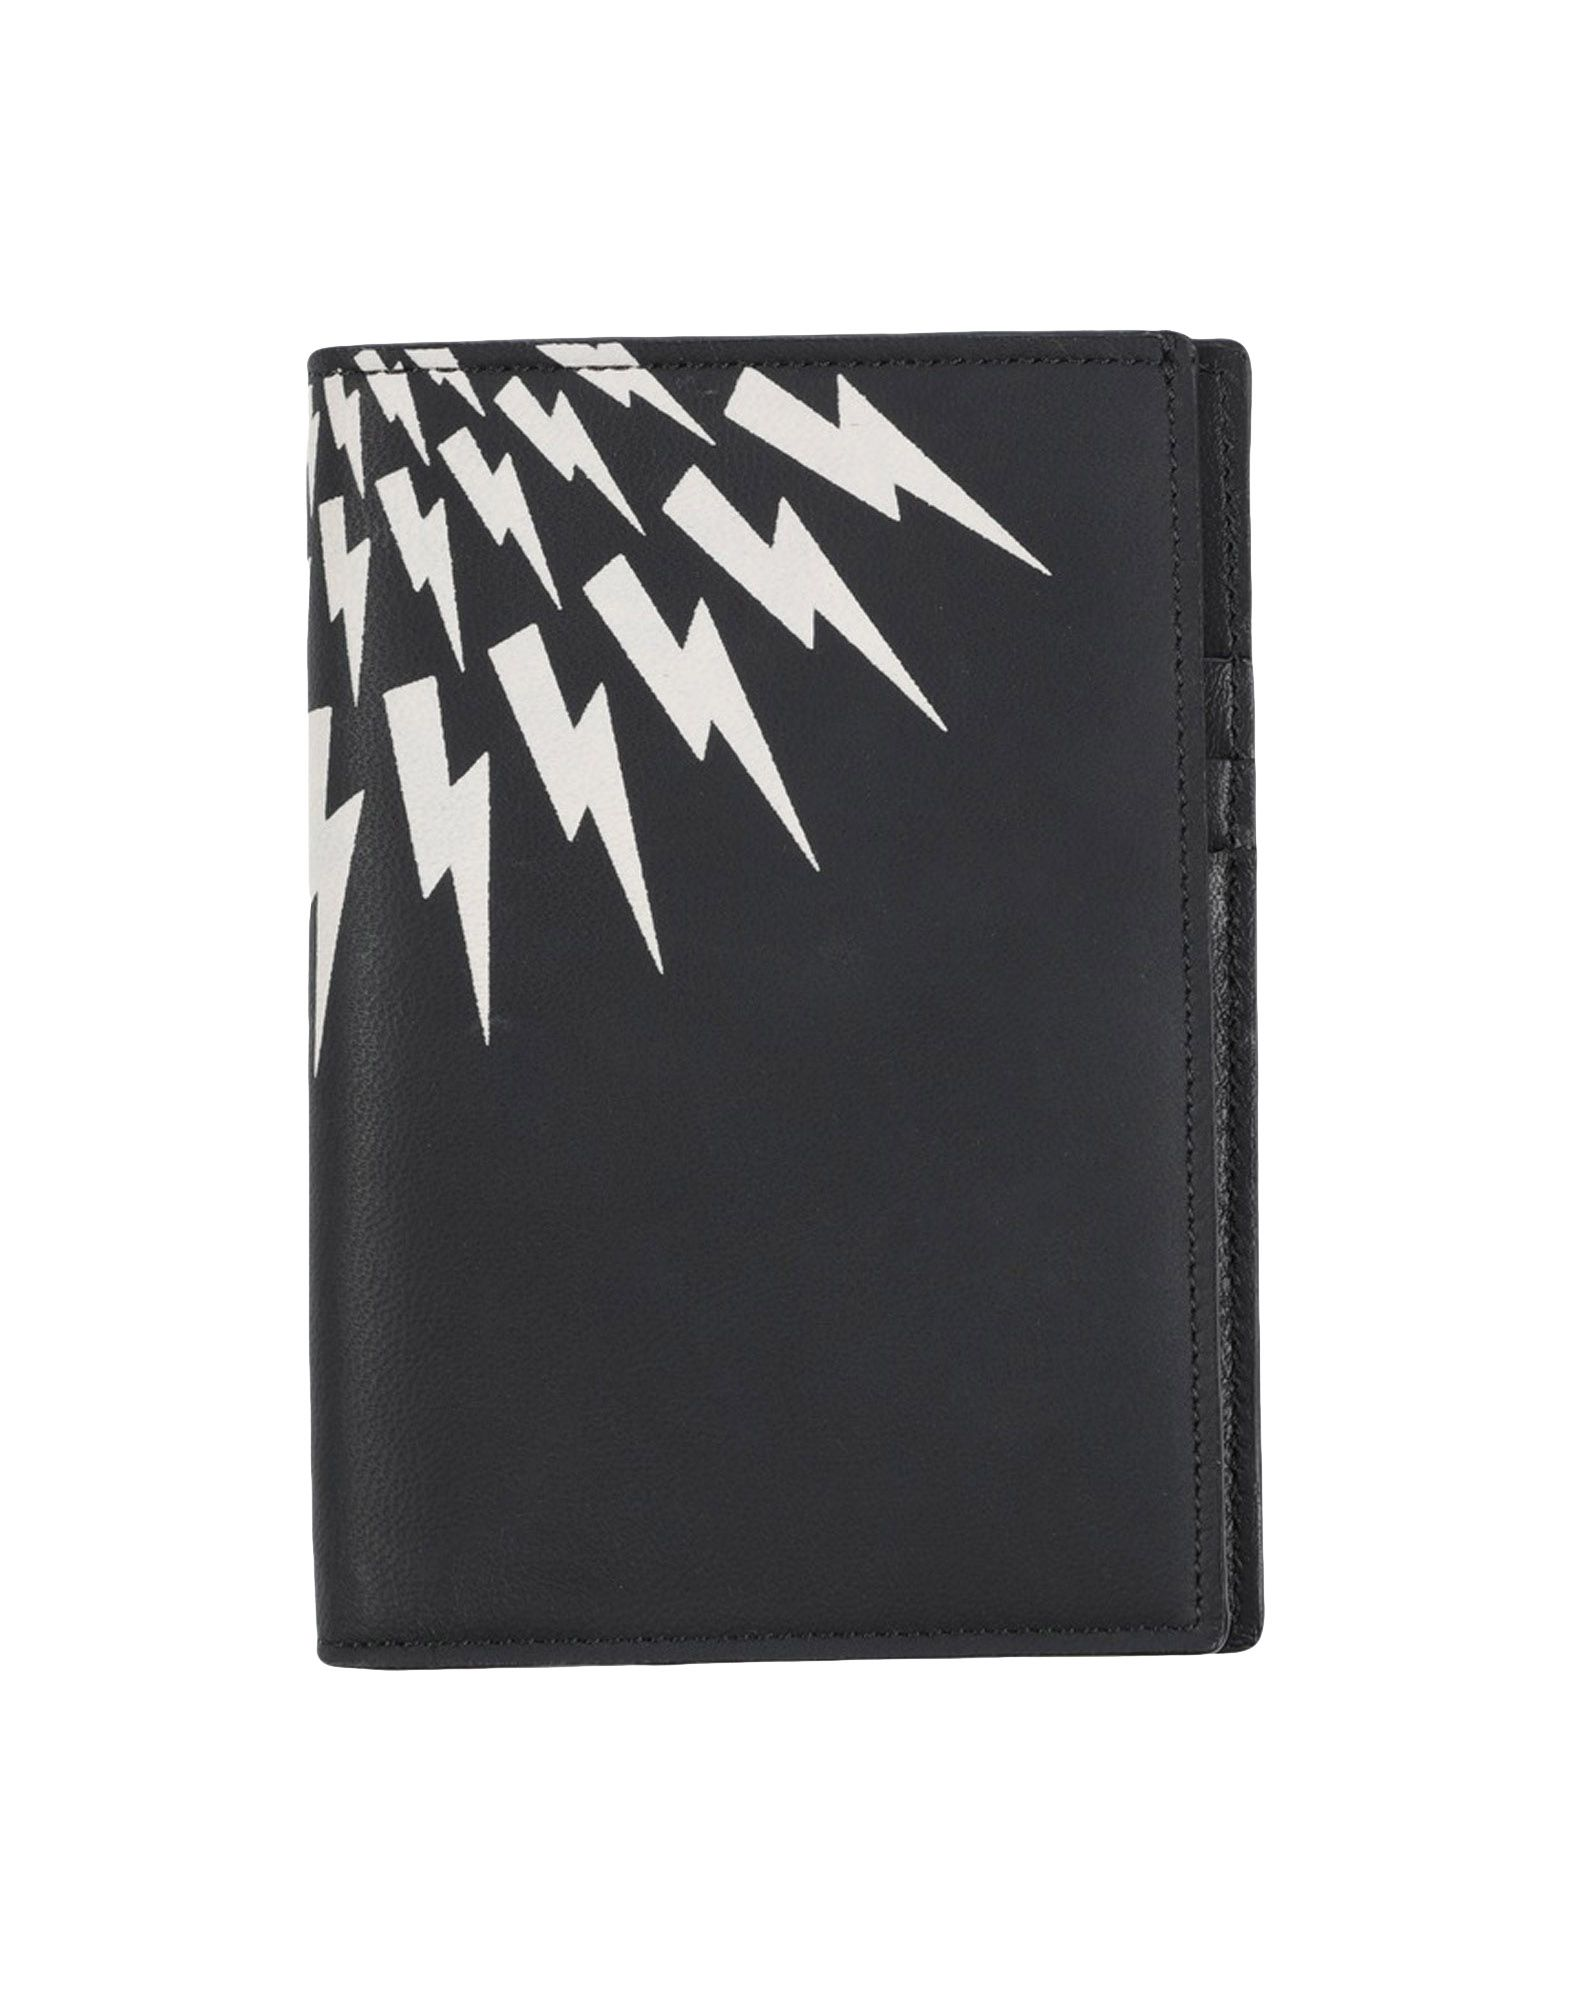 NEIL BARRETT Document holders. leather, print, solid color, internal card slots, leather lining, contains non-textile parts of animal origin. Soft Leather